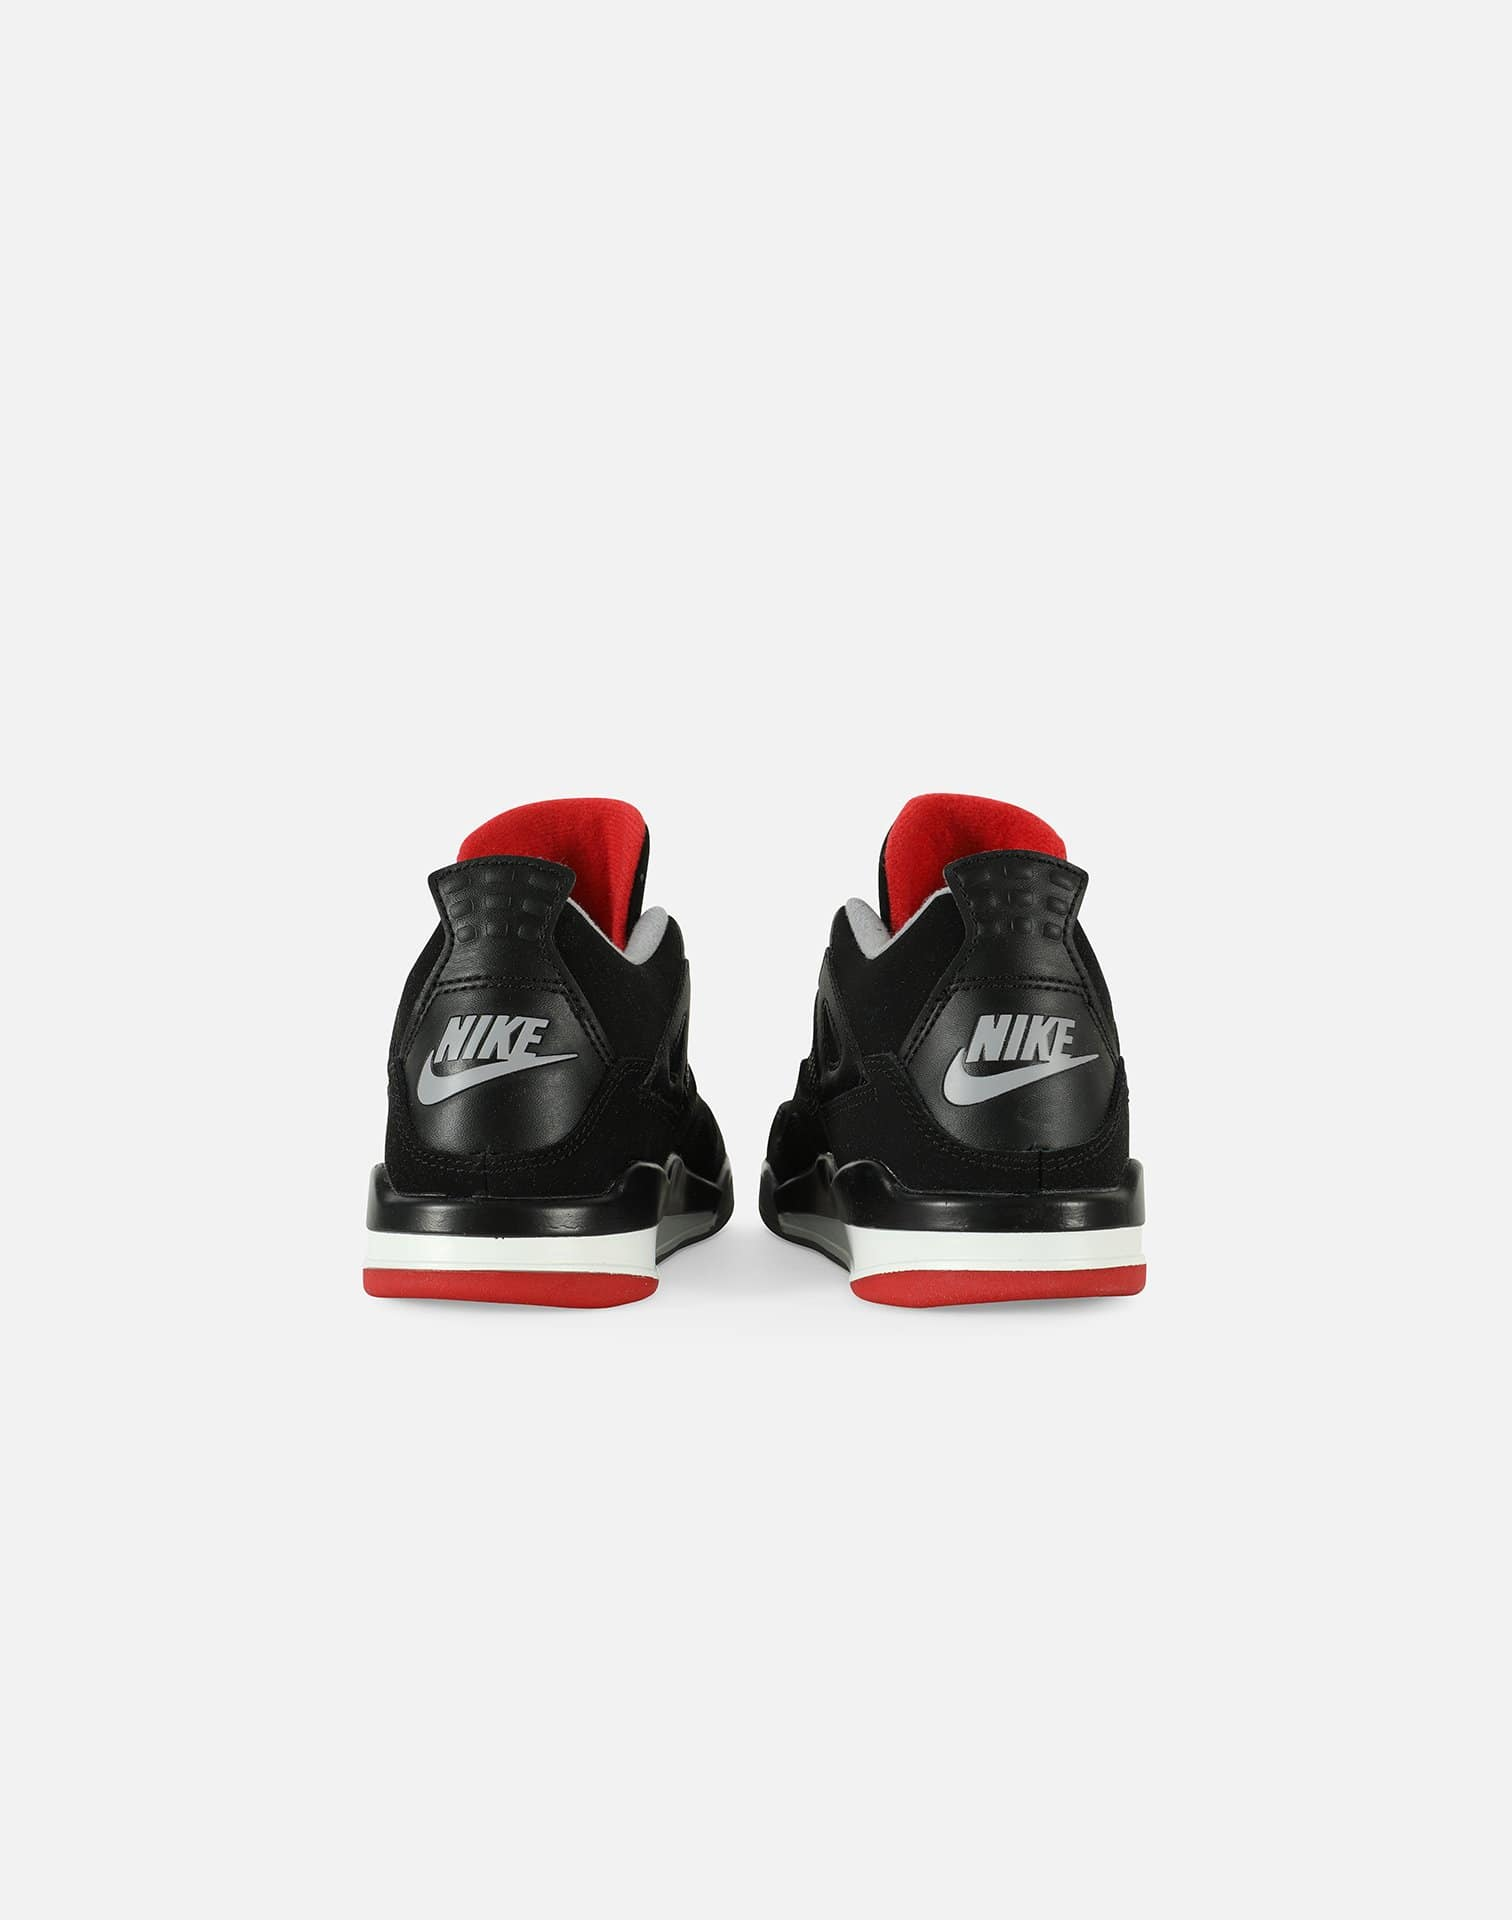 Jordan Air Jordan Retro 4 'Bred' Pre-School